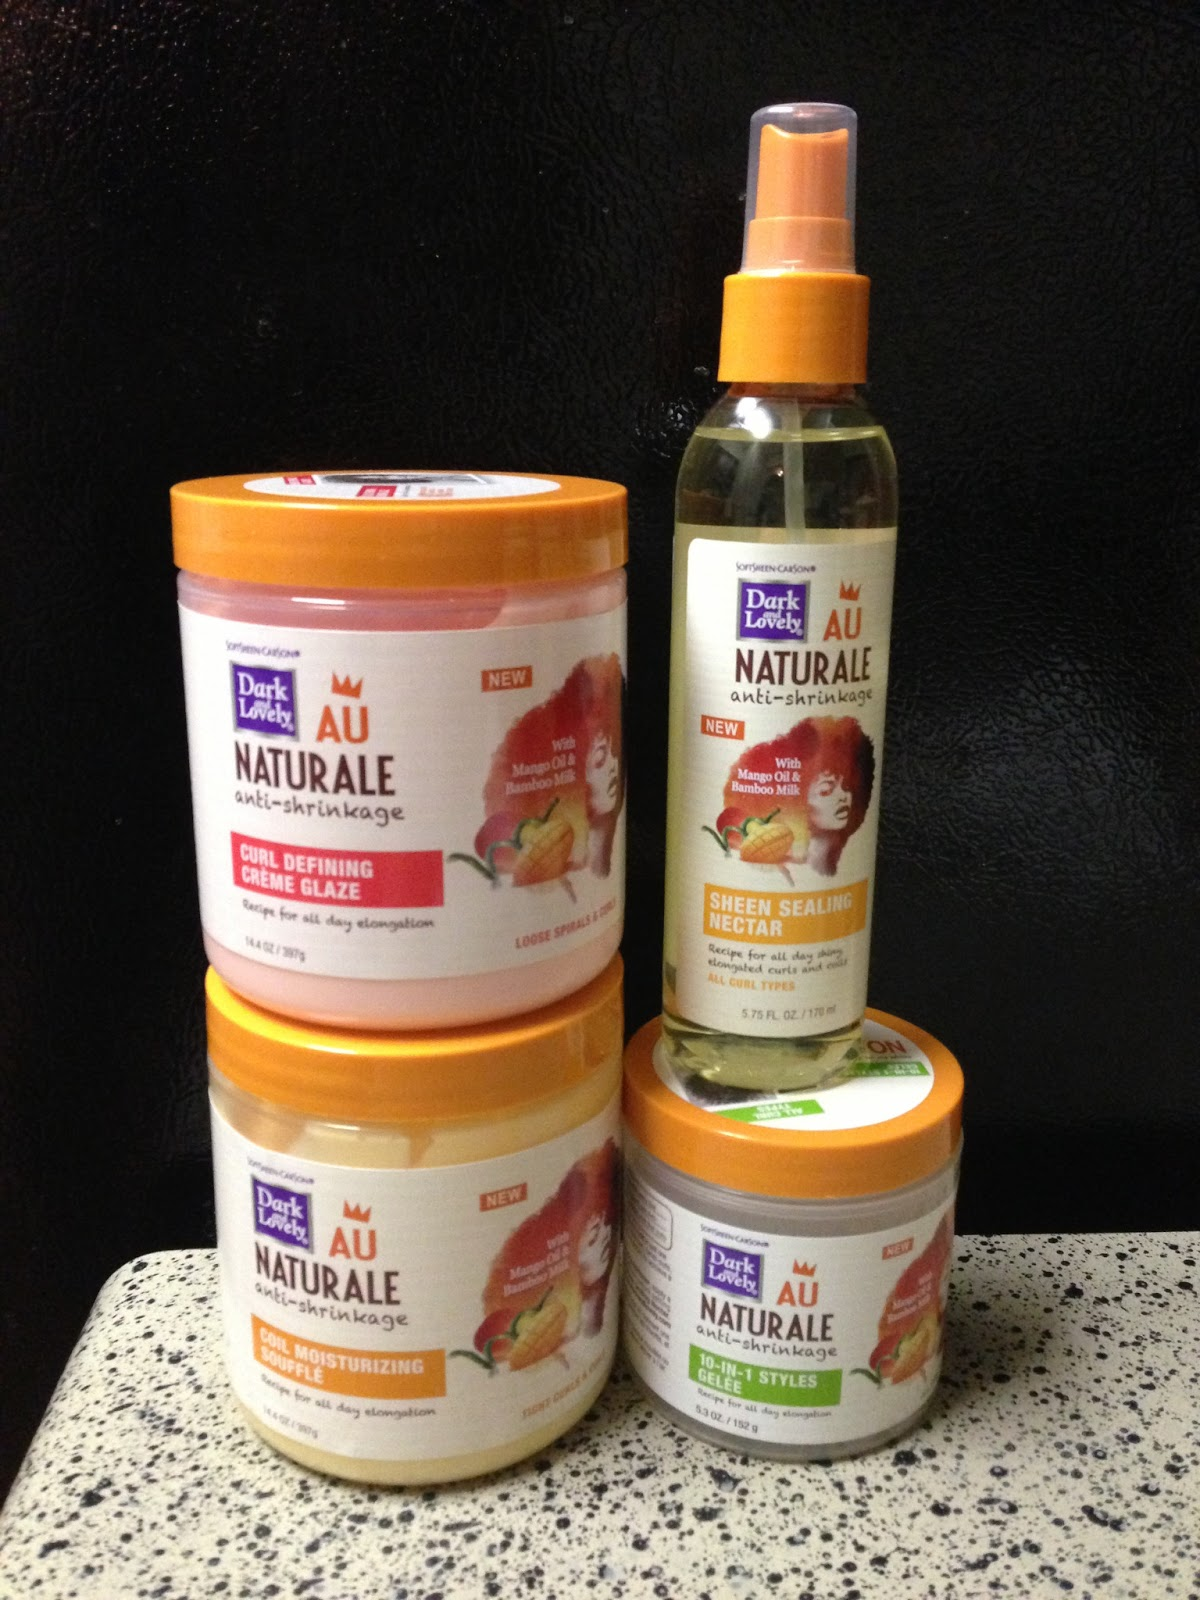 NEW! Dark and Lovely Au Naturale Anti-Shrinkage for Natural Hair ...